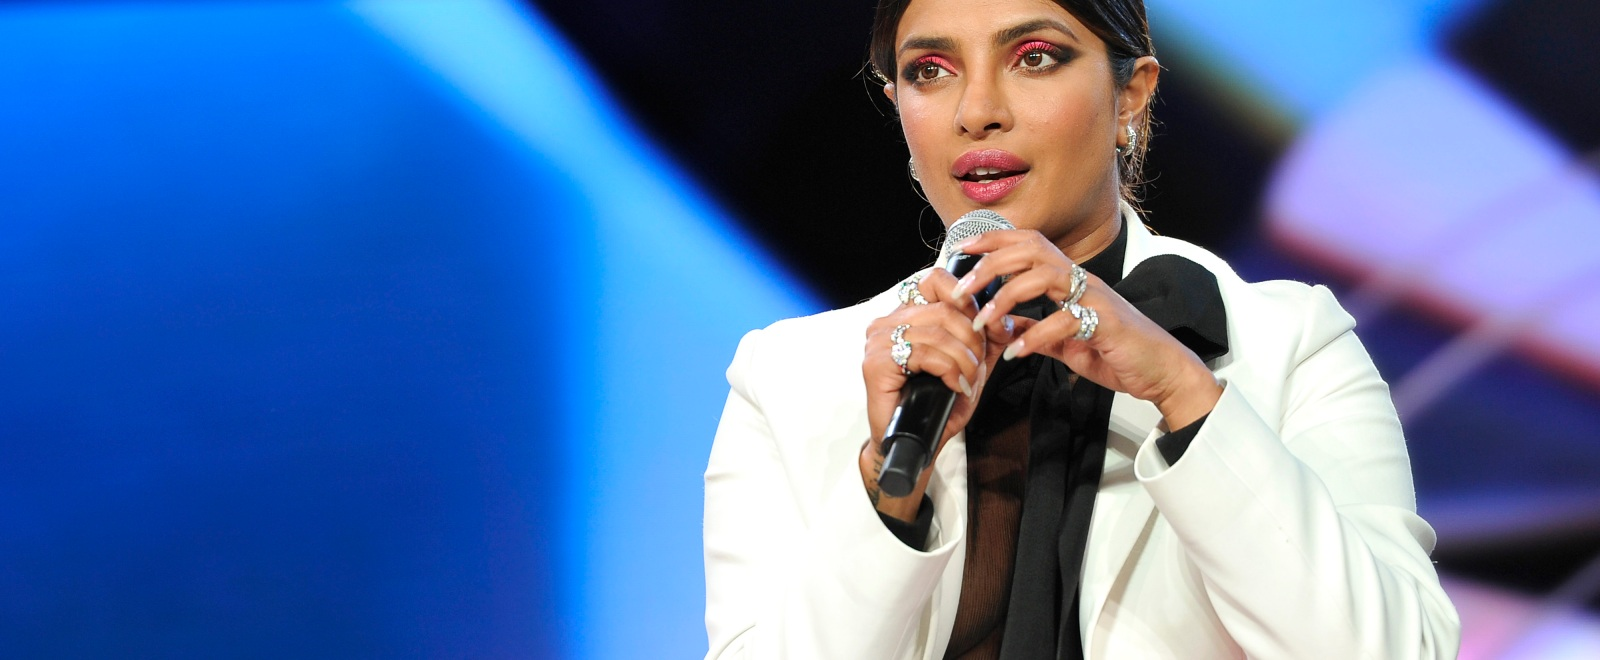 Priyanka Chopra Has Set Up A Fundraiser To Help Those In India Suffering From The 'World's Worst COVID Crisis'